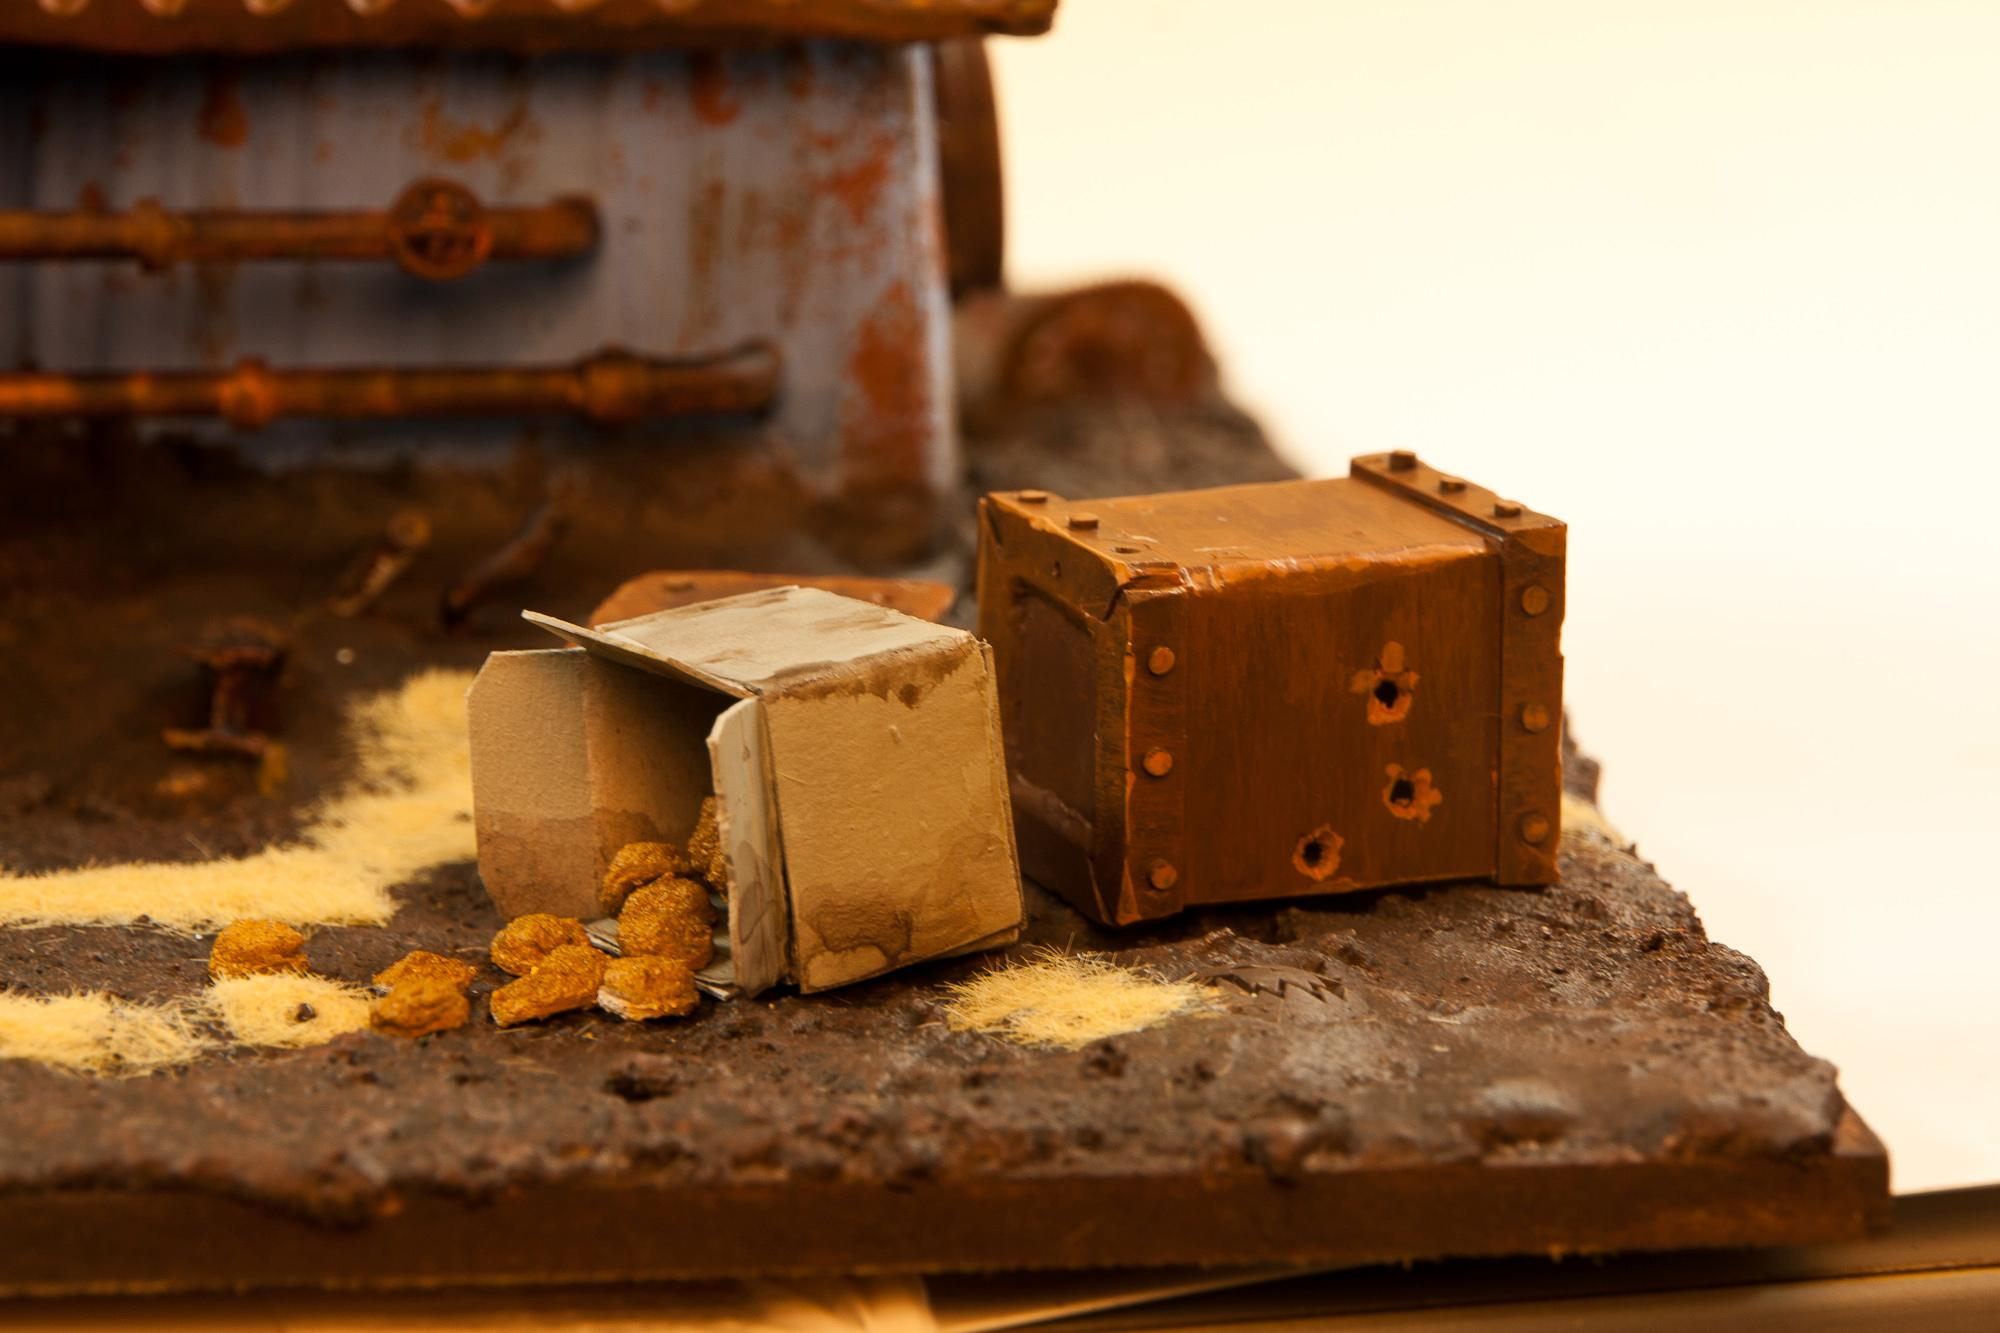 Competition, Cookie, Orks, Package, Rust, Terrain